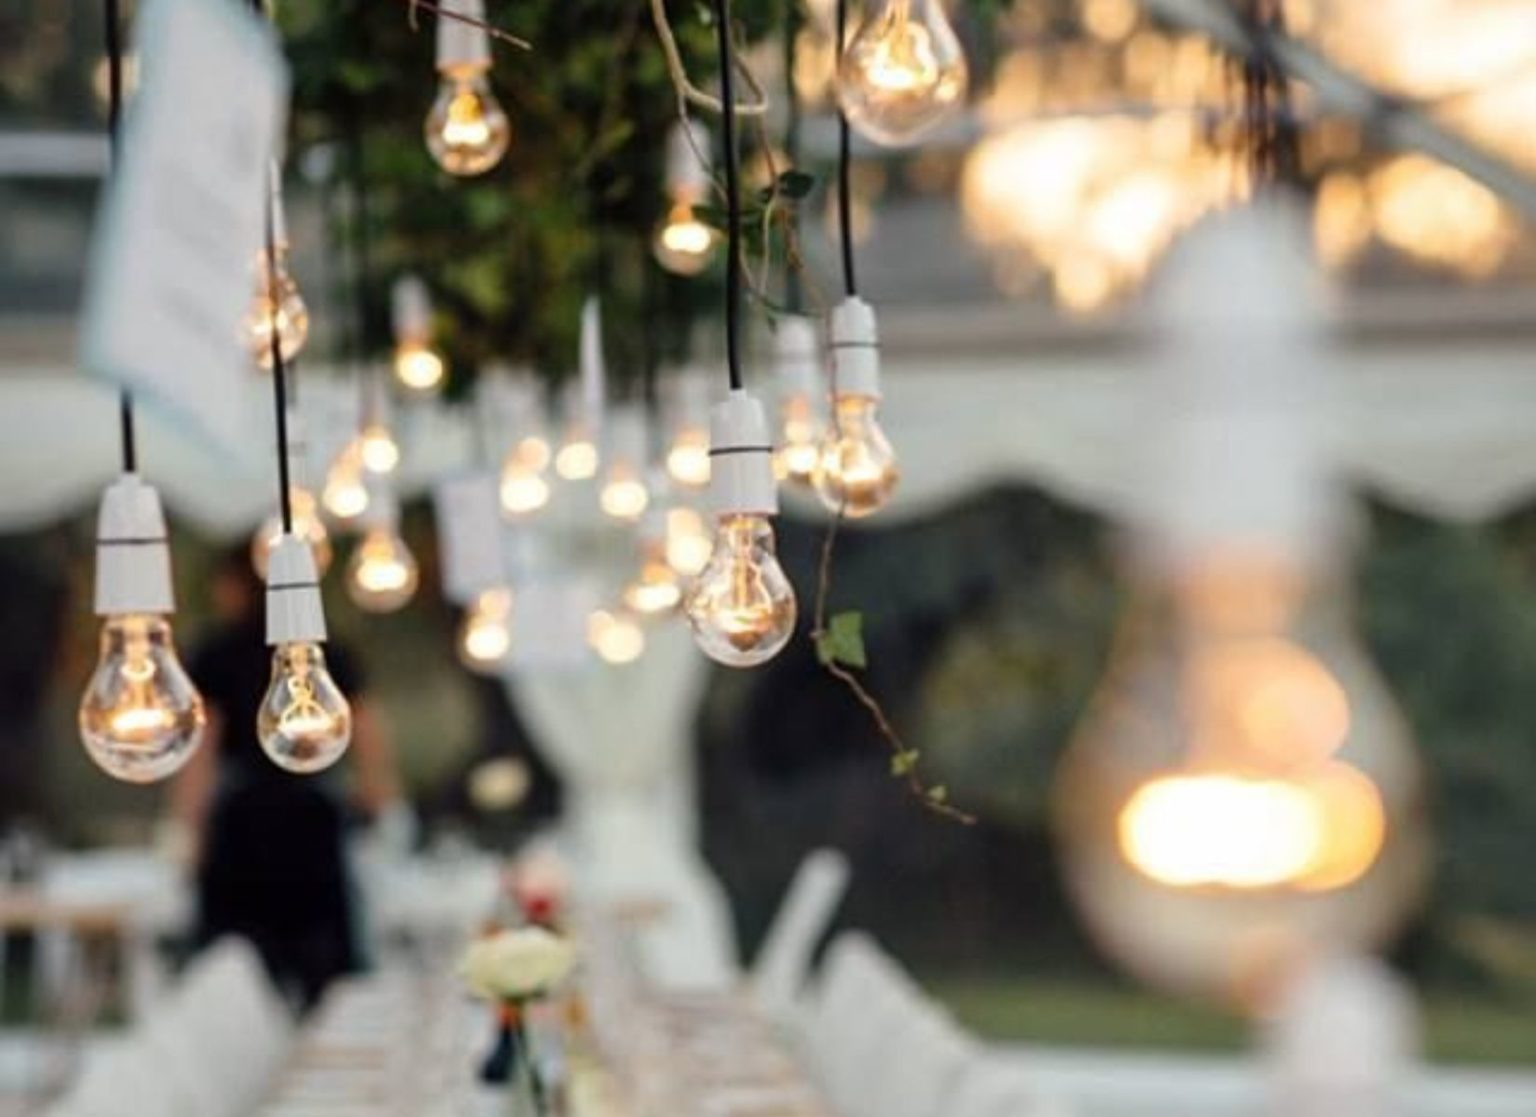 Pendant Lighting inside Wedding Marquee